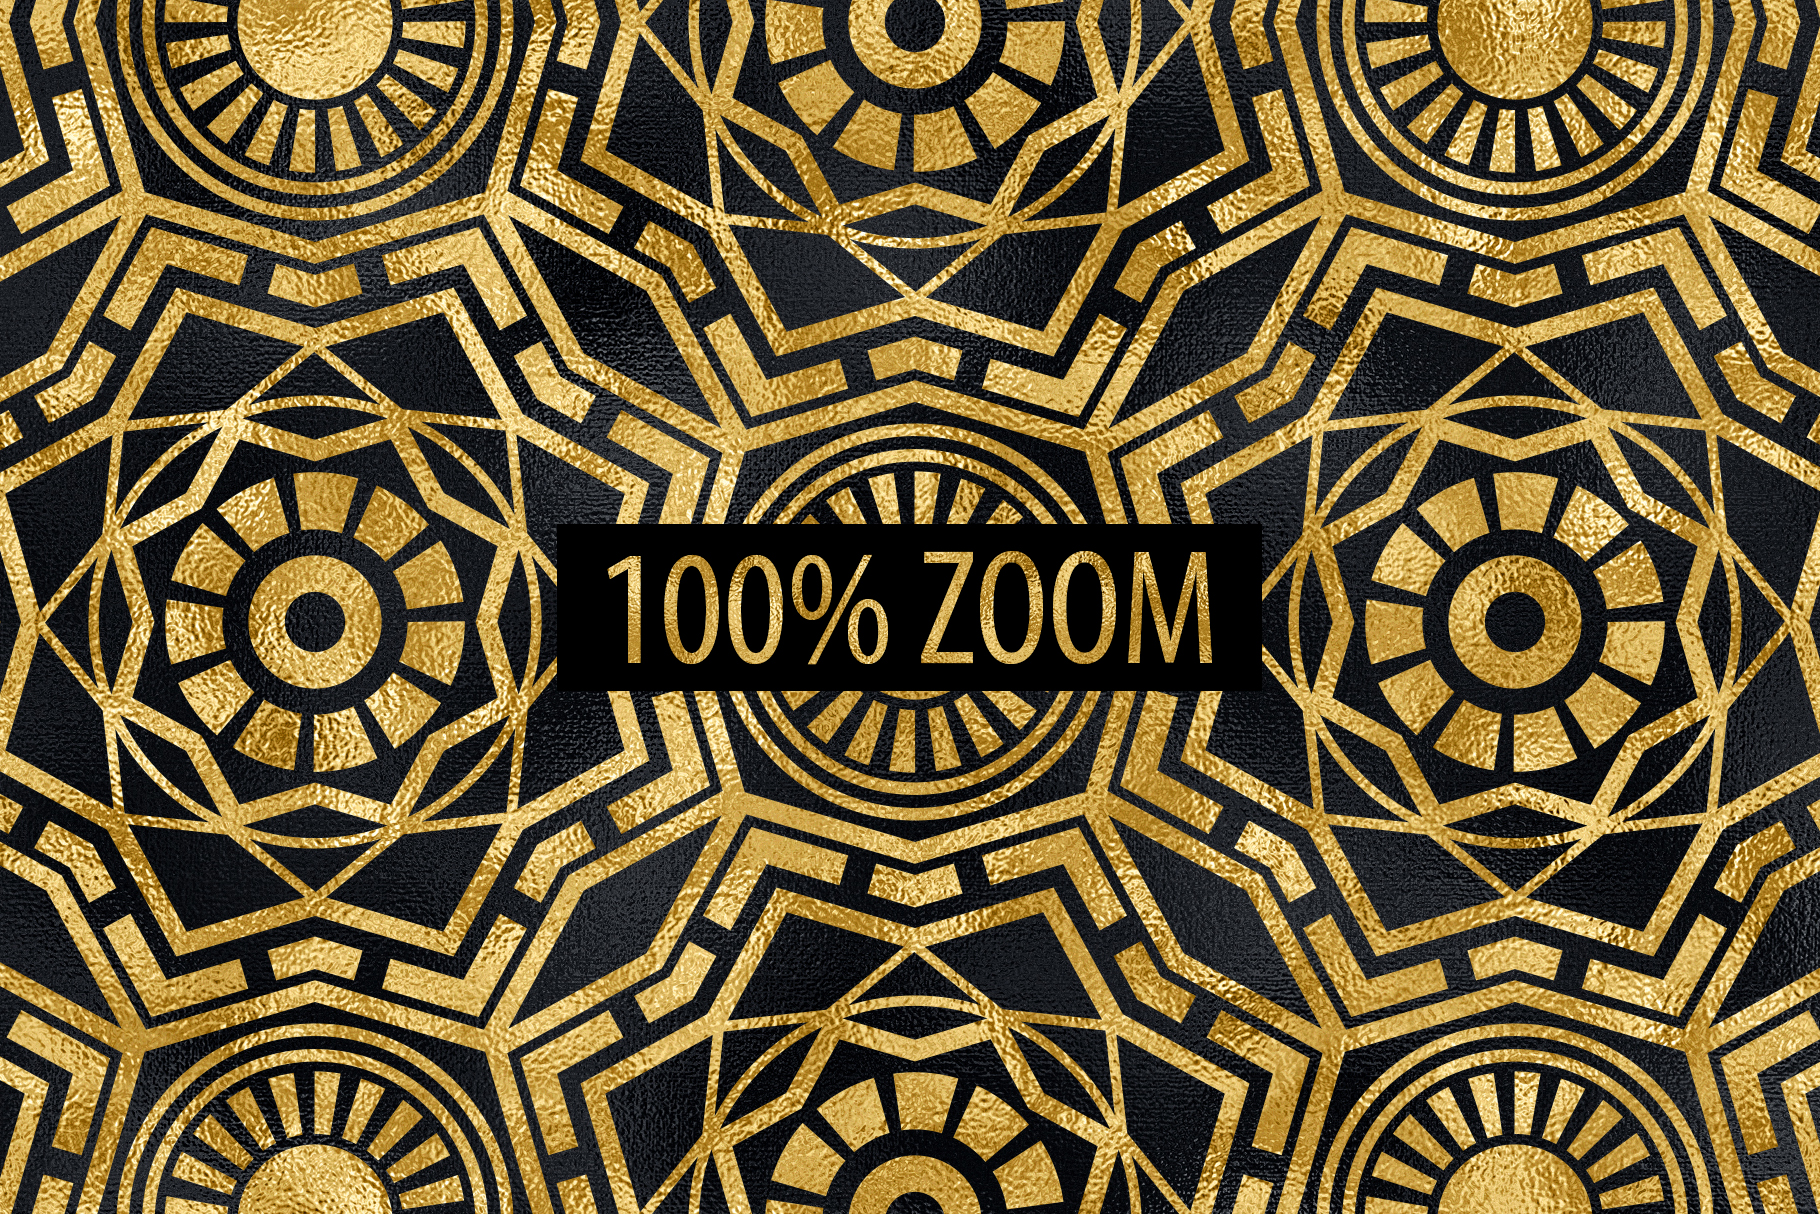 Geometric Art Deco Patterns - 20 Seamless Vector Patterns example image 24